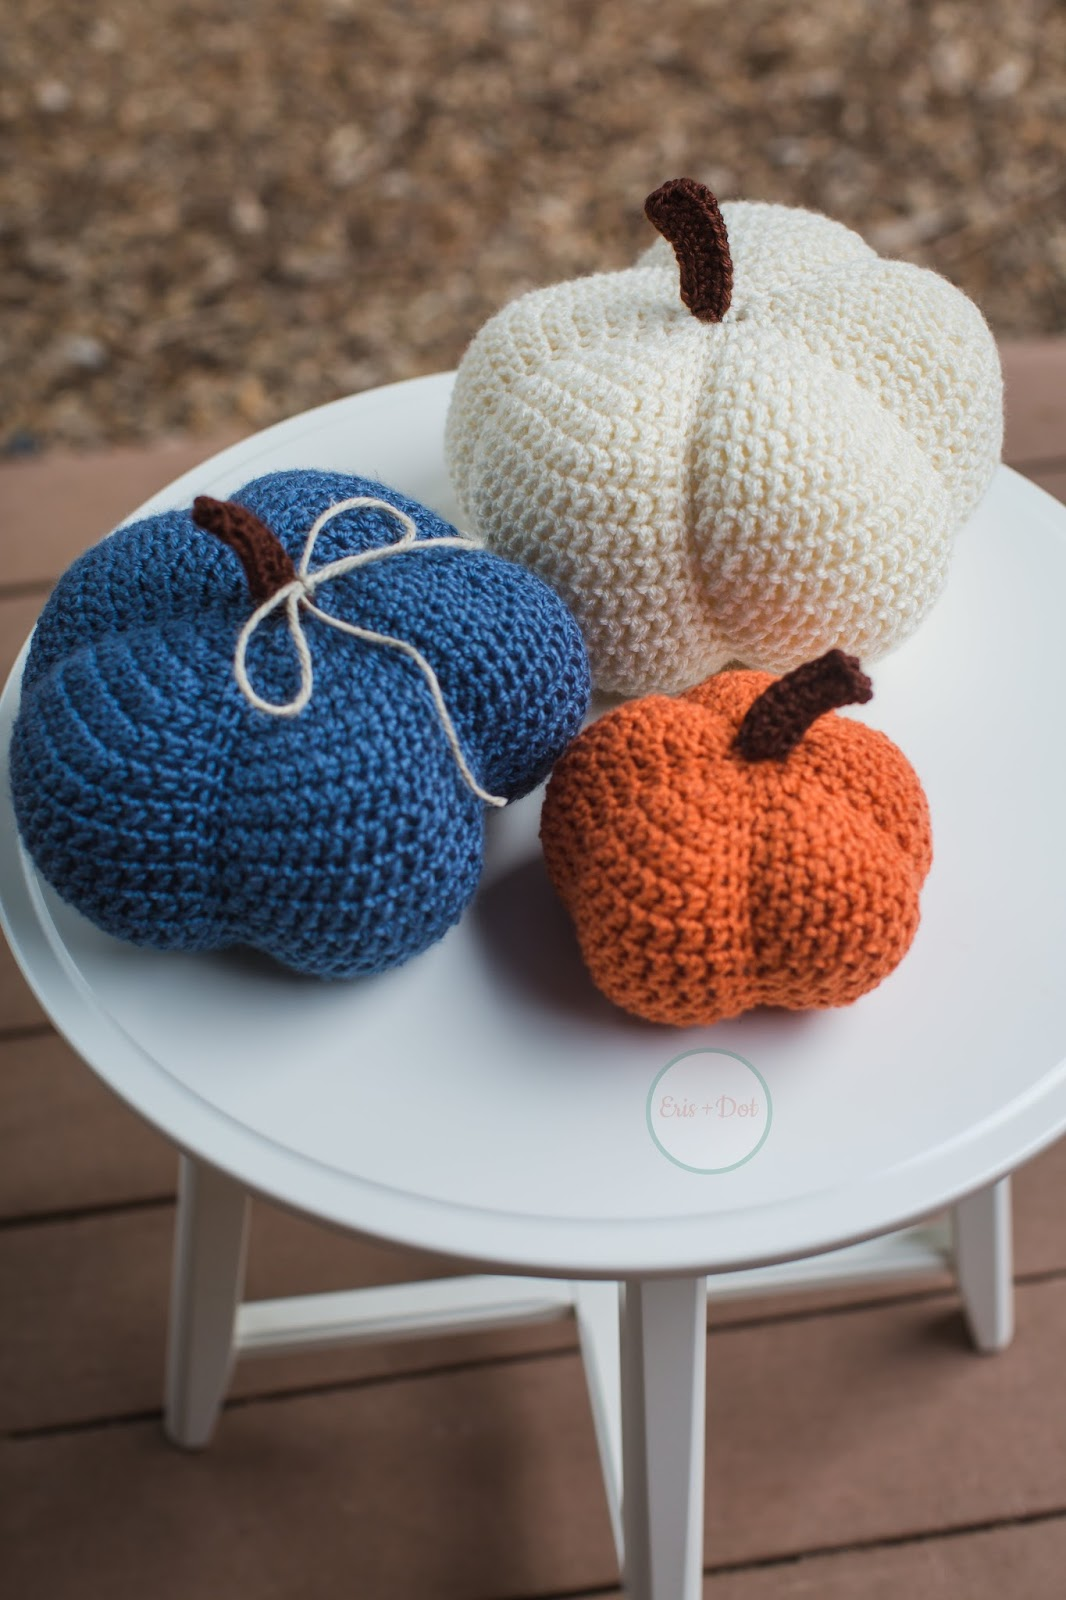 Crochet Pumpkins Set, Stuffed Pumpkins, Set of Three, Rustic, Home Decor, Fall, Autumn, Nature Inspired, Small, Medium, Large, Halloween